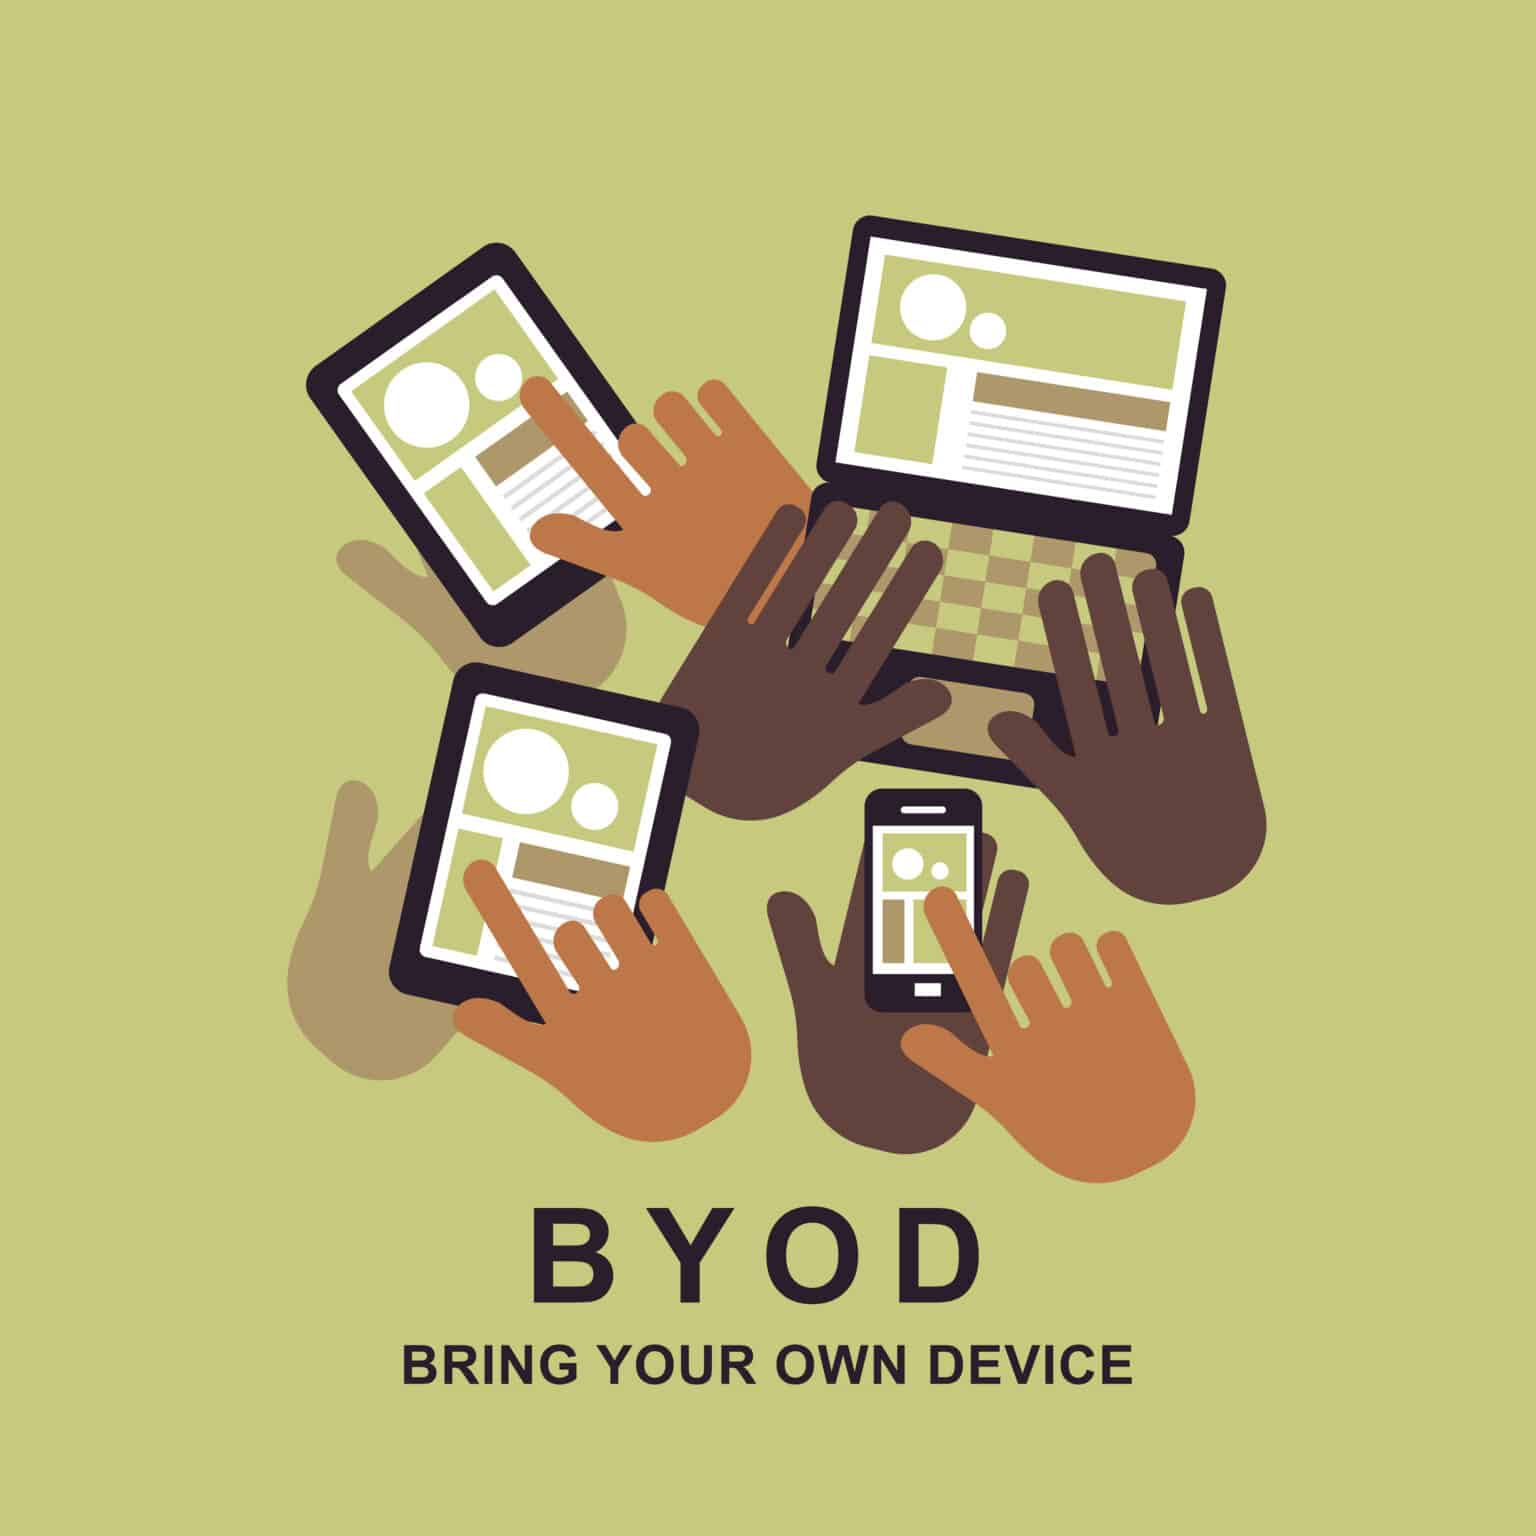 flat design concept of BYOD bring you own device